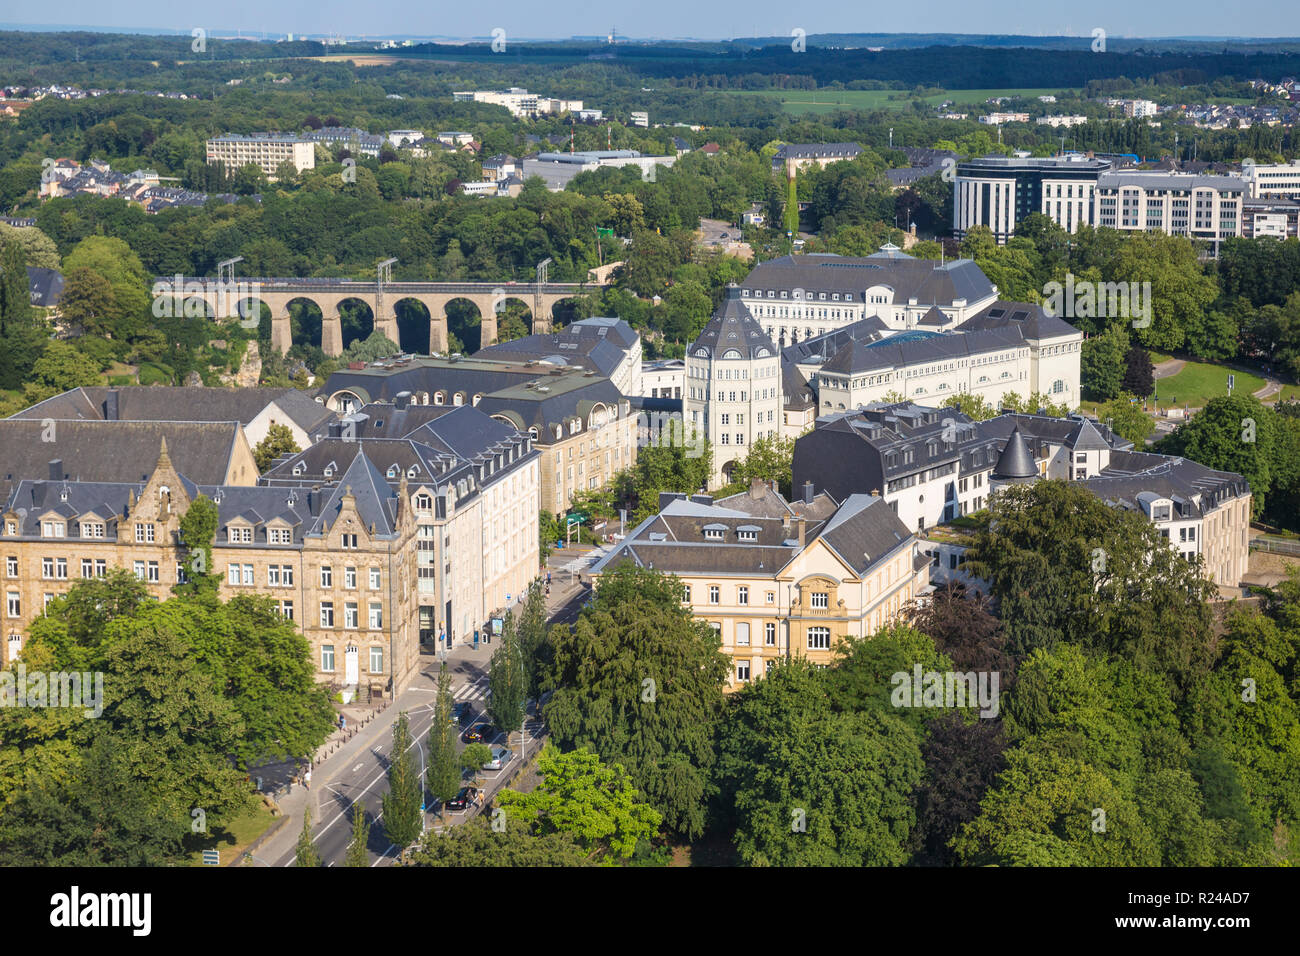 City view looking towards The Judiciary City and train viaduct, Luxembourg City, Luxembourg, Europe - Stock Image